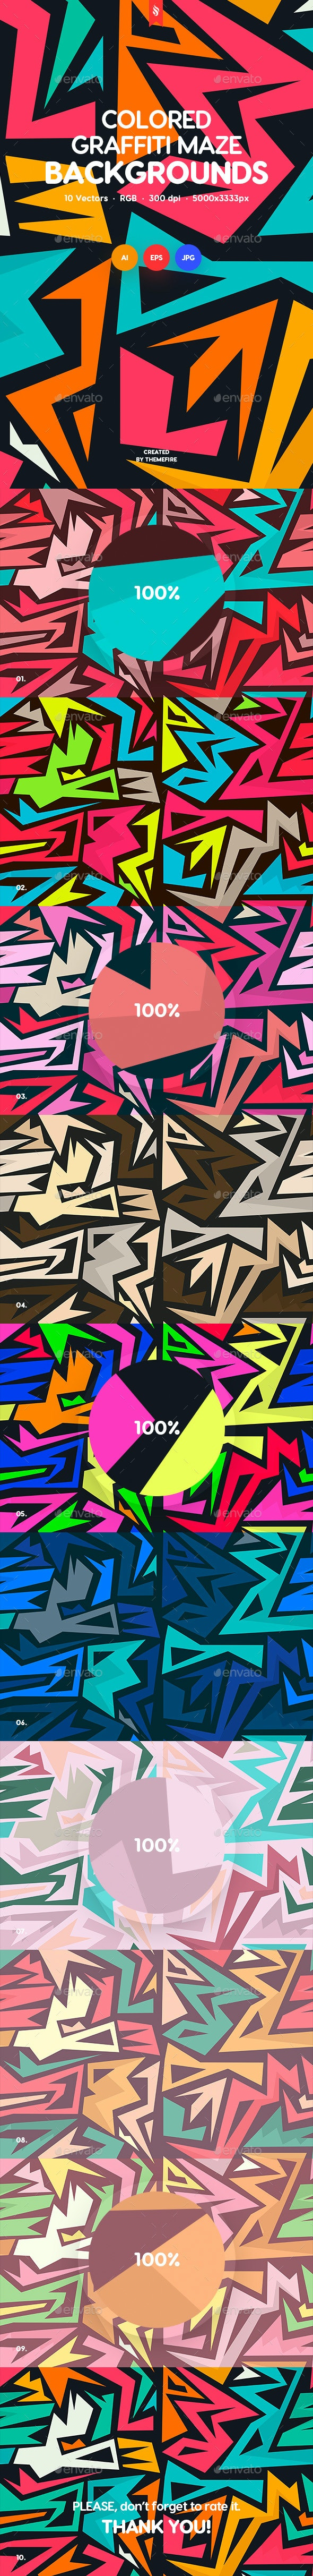 Colored Graffiti Maze Seamless Patterns - Patterns Backgrounds